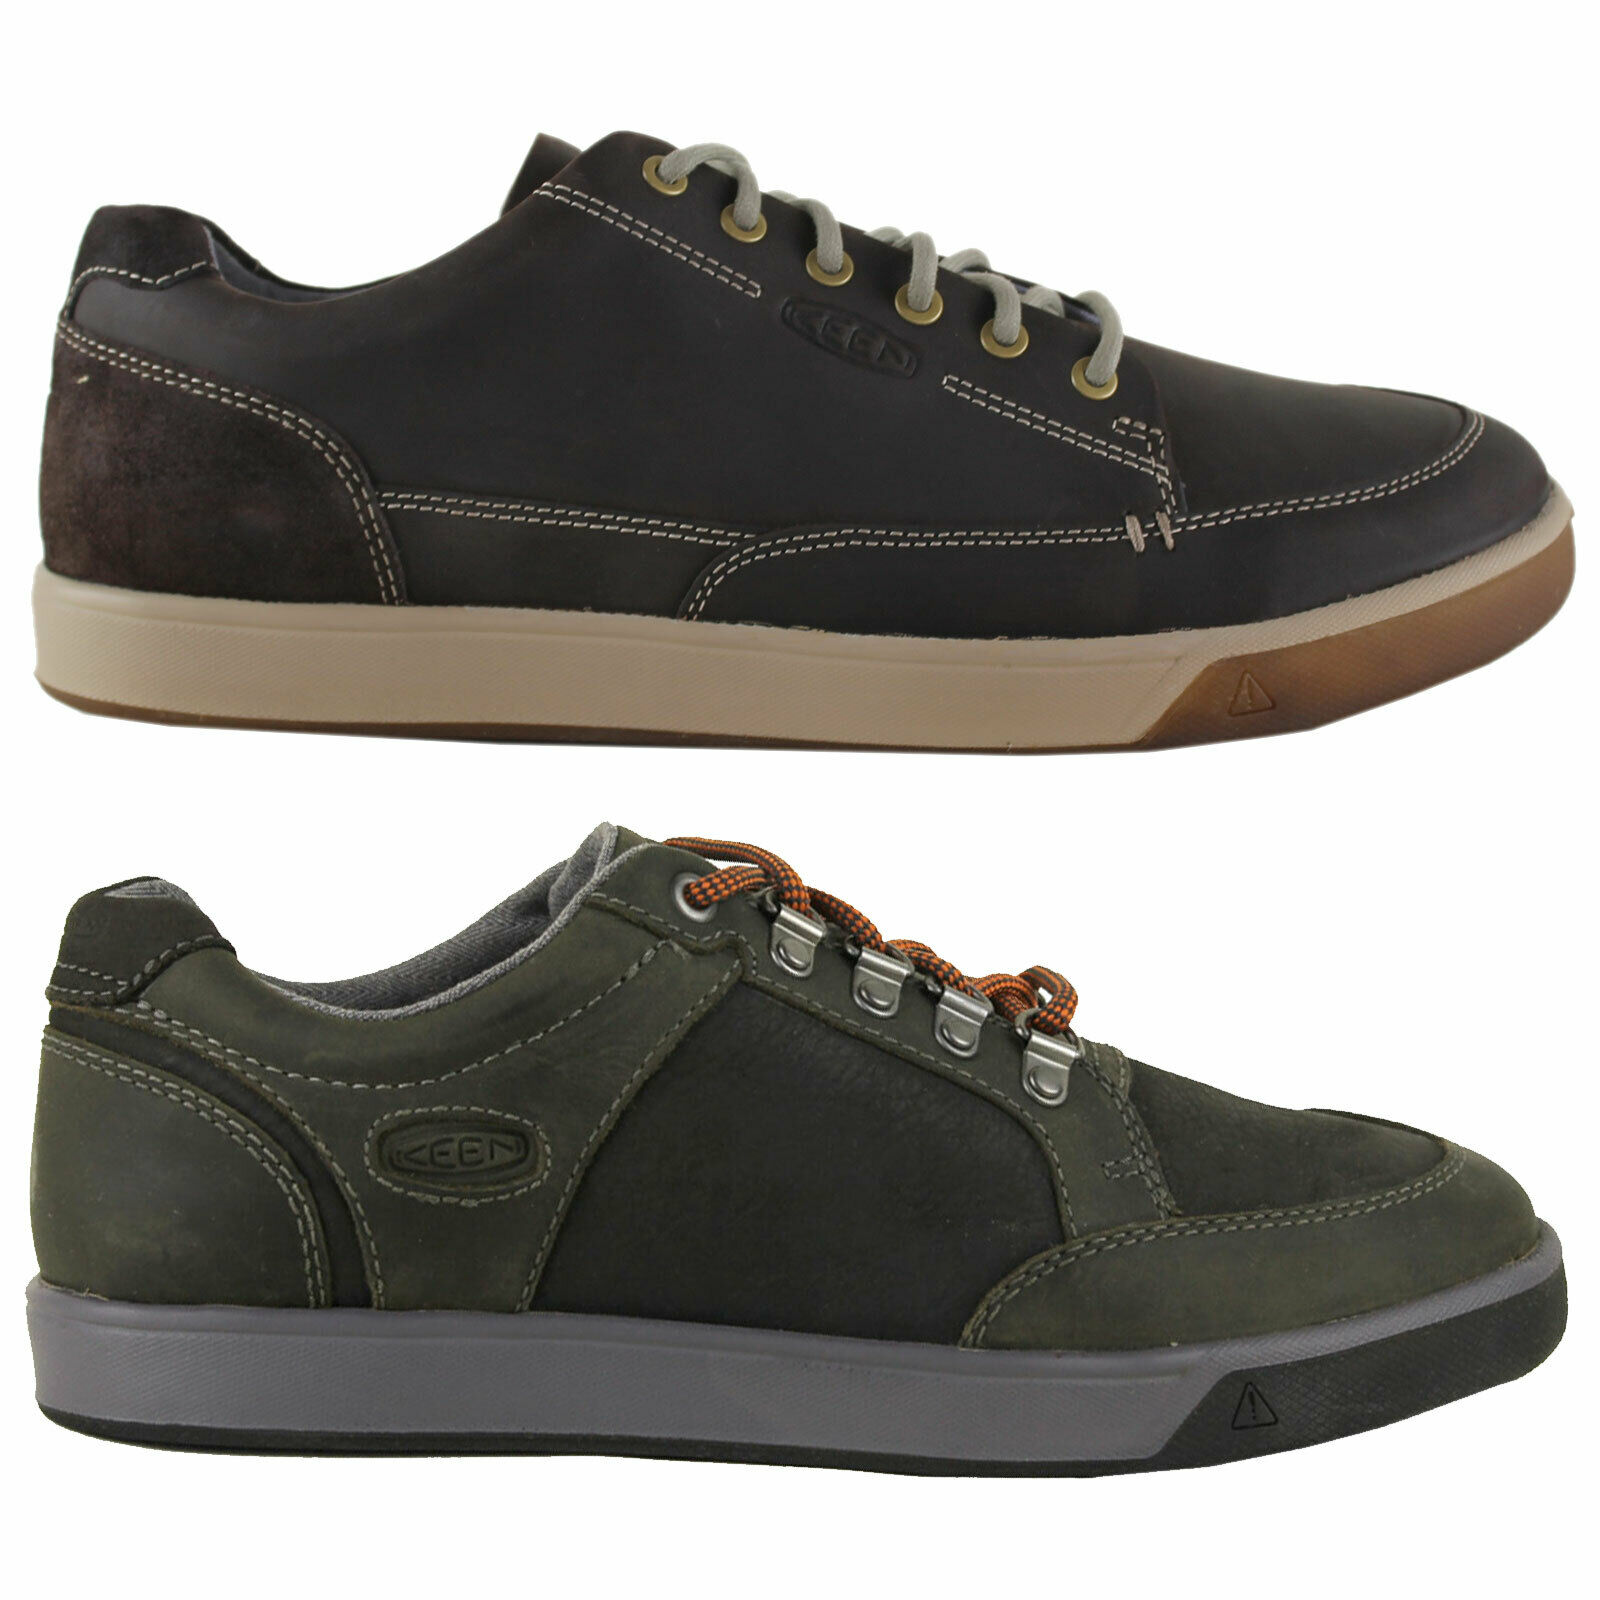 Keen Glenhaven Explorer Trainers Mens shoes Low shoes Lace-Up shoes New